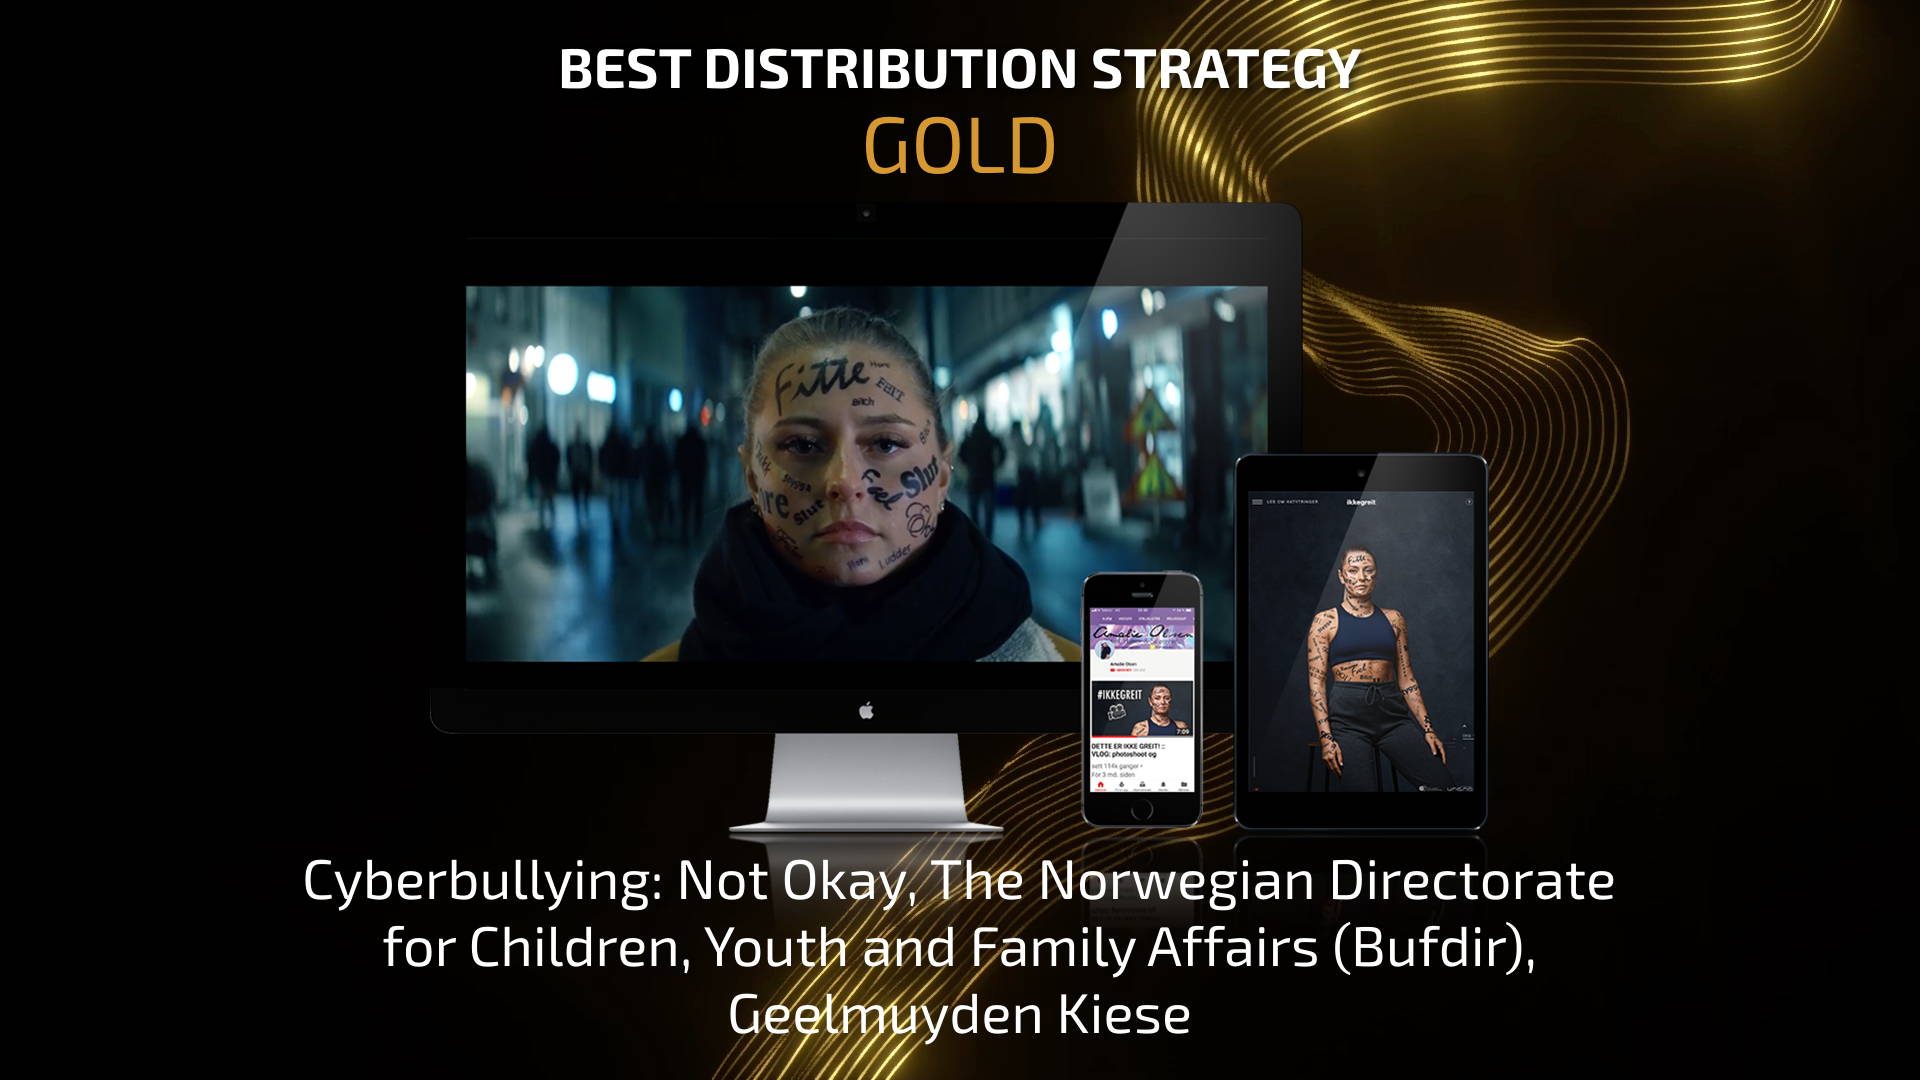 Best Distribution Strategy - Gold